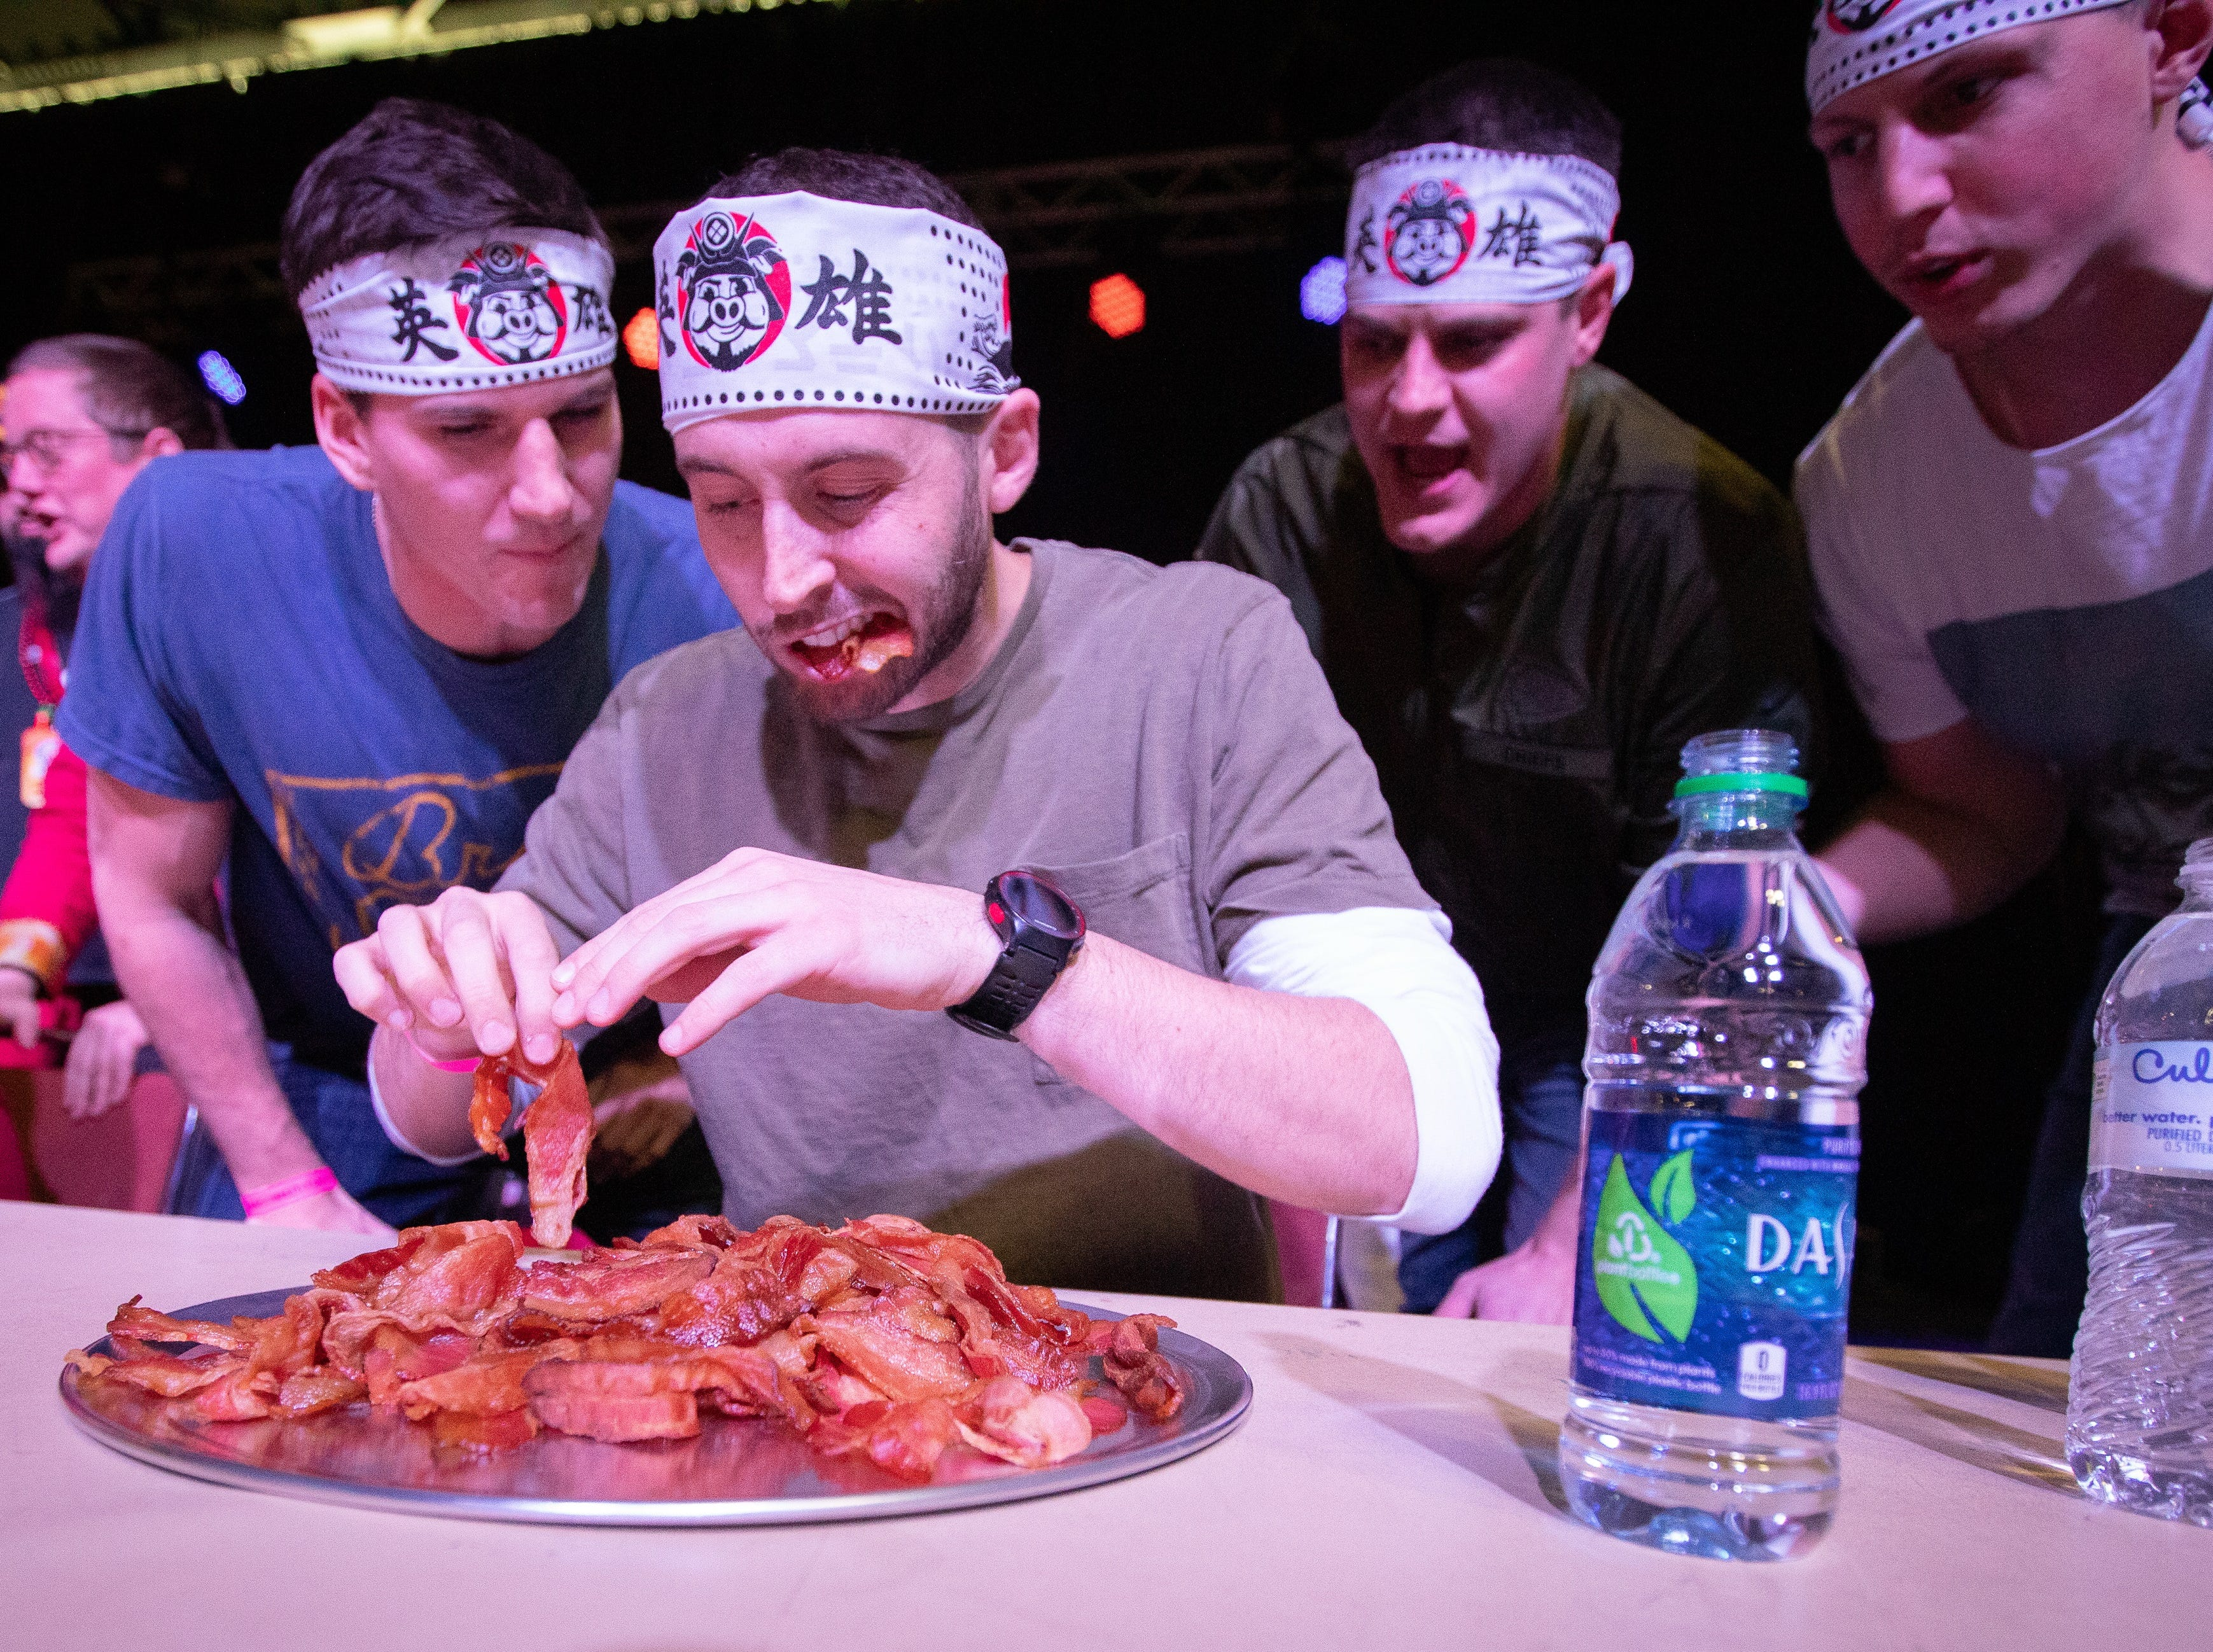 James Grunert, of Des Moines, participates in the eating contest as his teammates support him during the Bacon Fest at Hy-Vee Hall on Feb. 16, 2019 in Des Moines, Iowa.